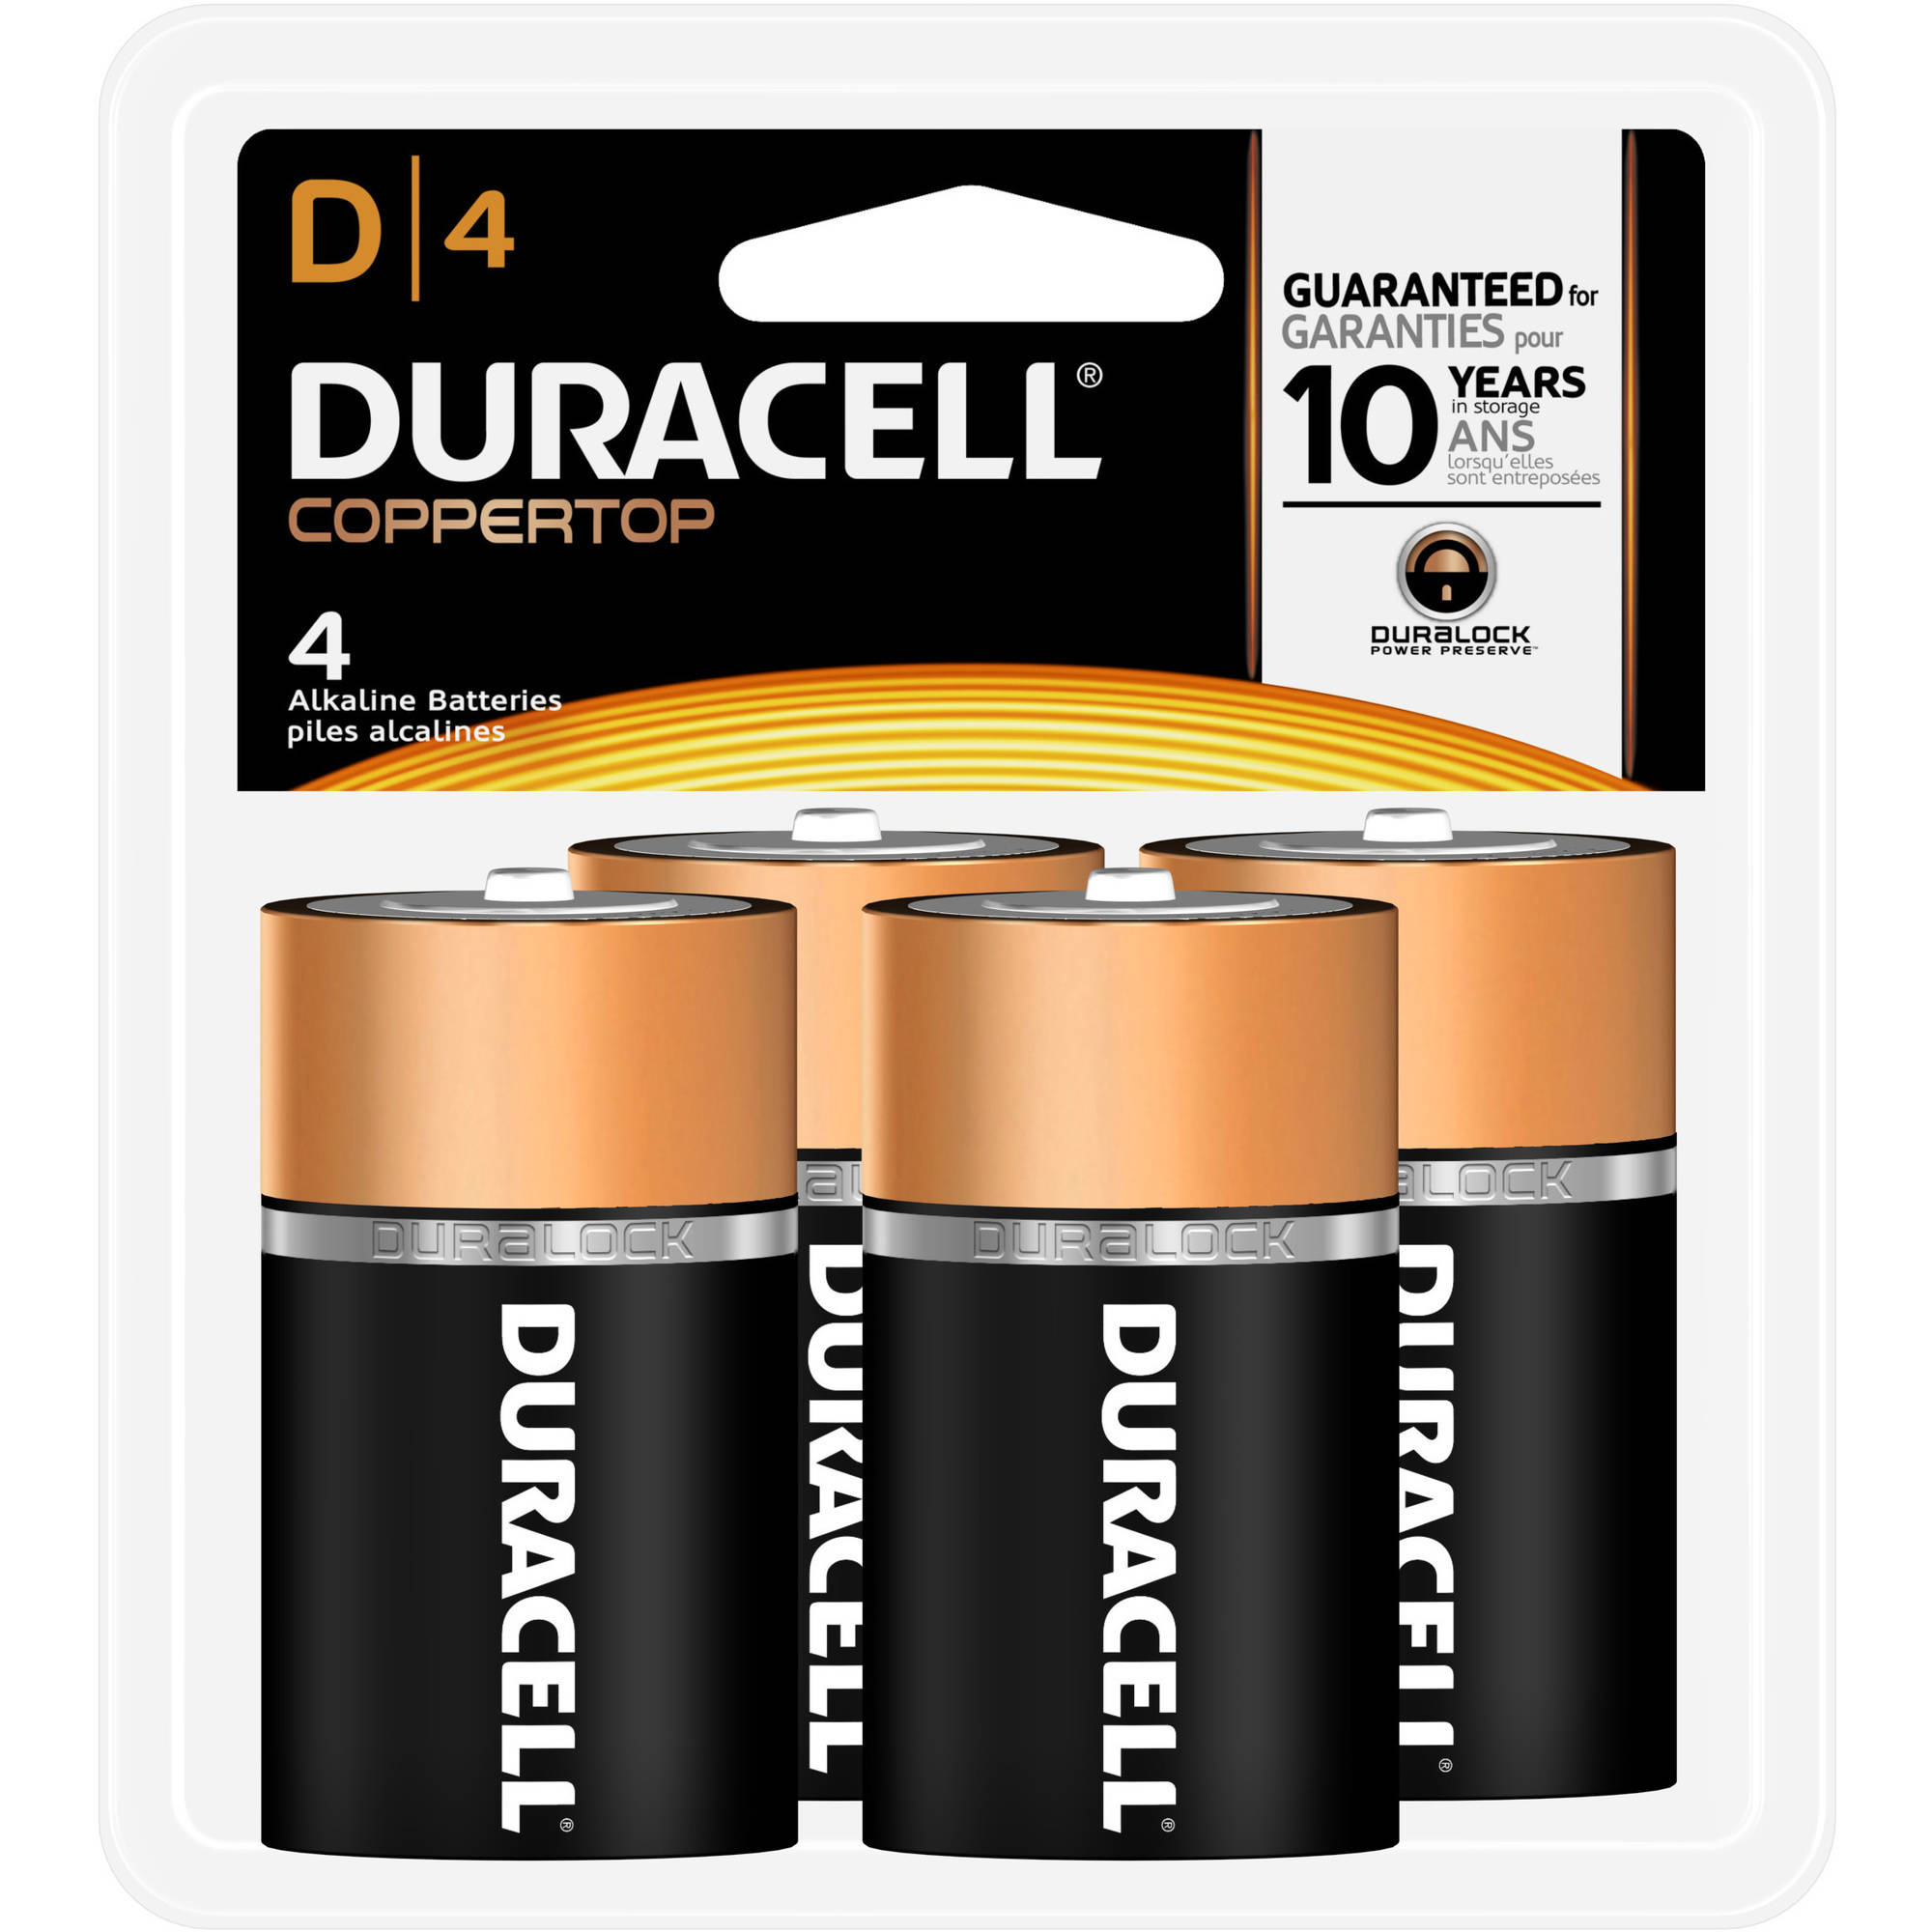 Duracell Coppertop Alkaline Household Batteries, D, 4 Household Batteries/Pack